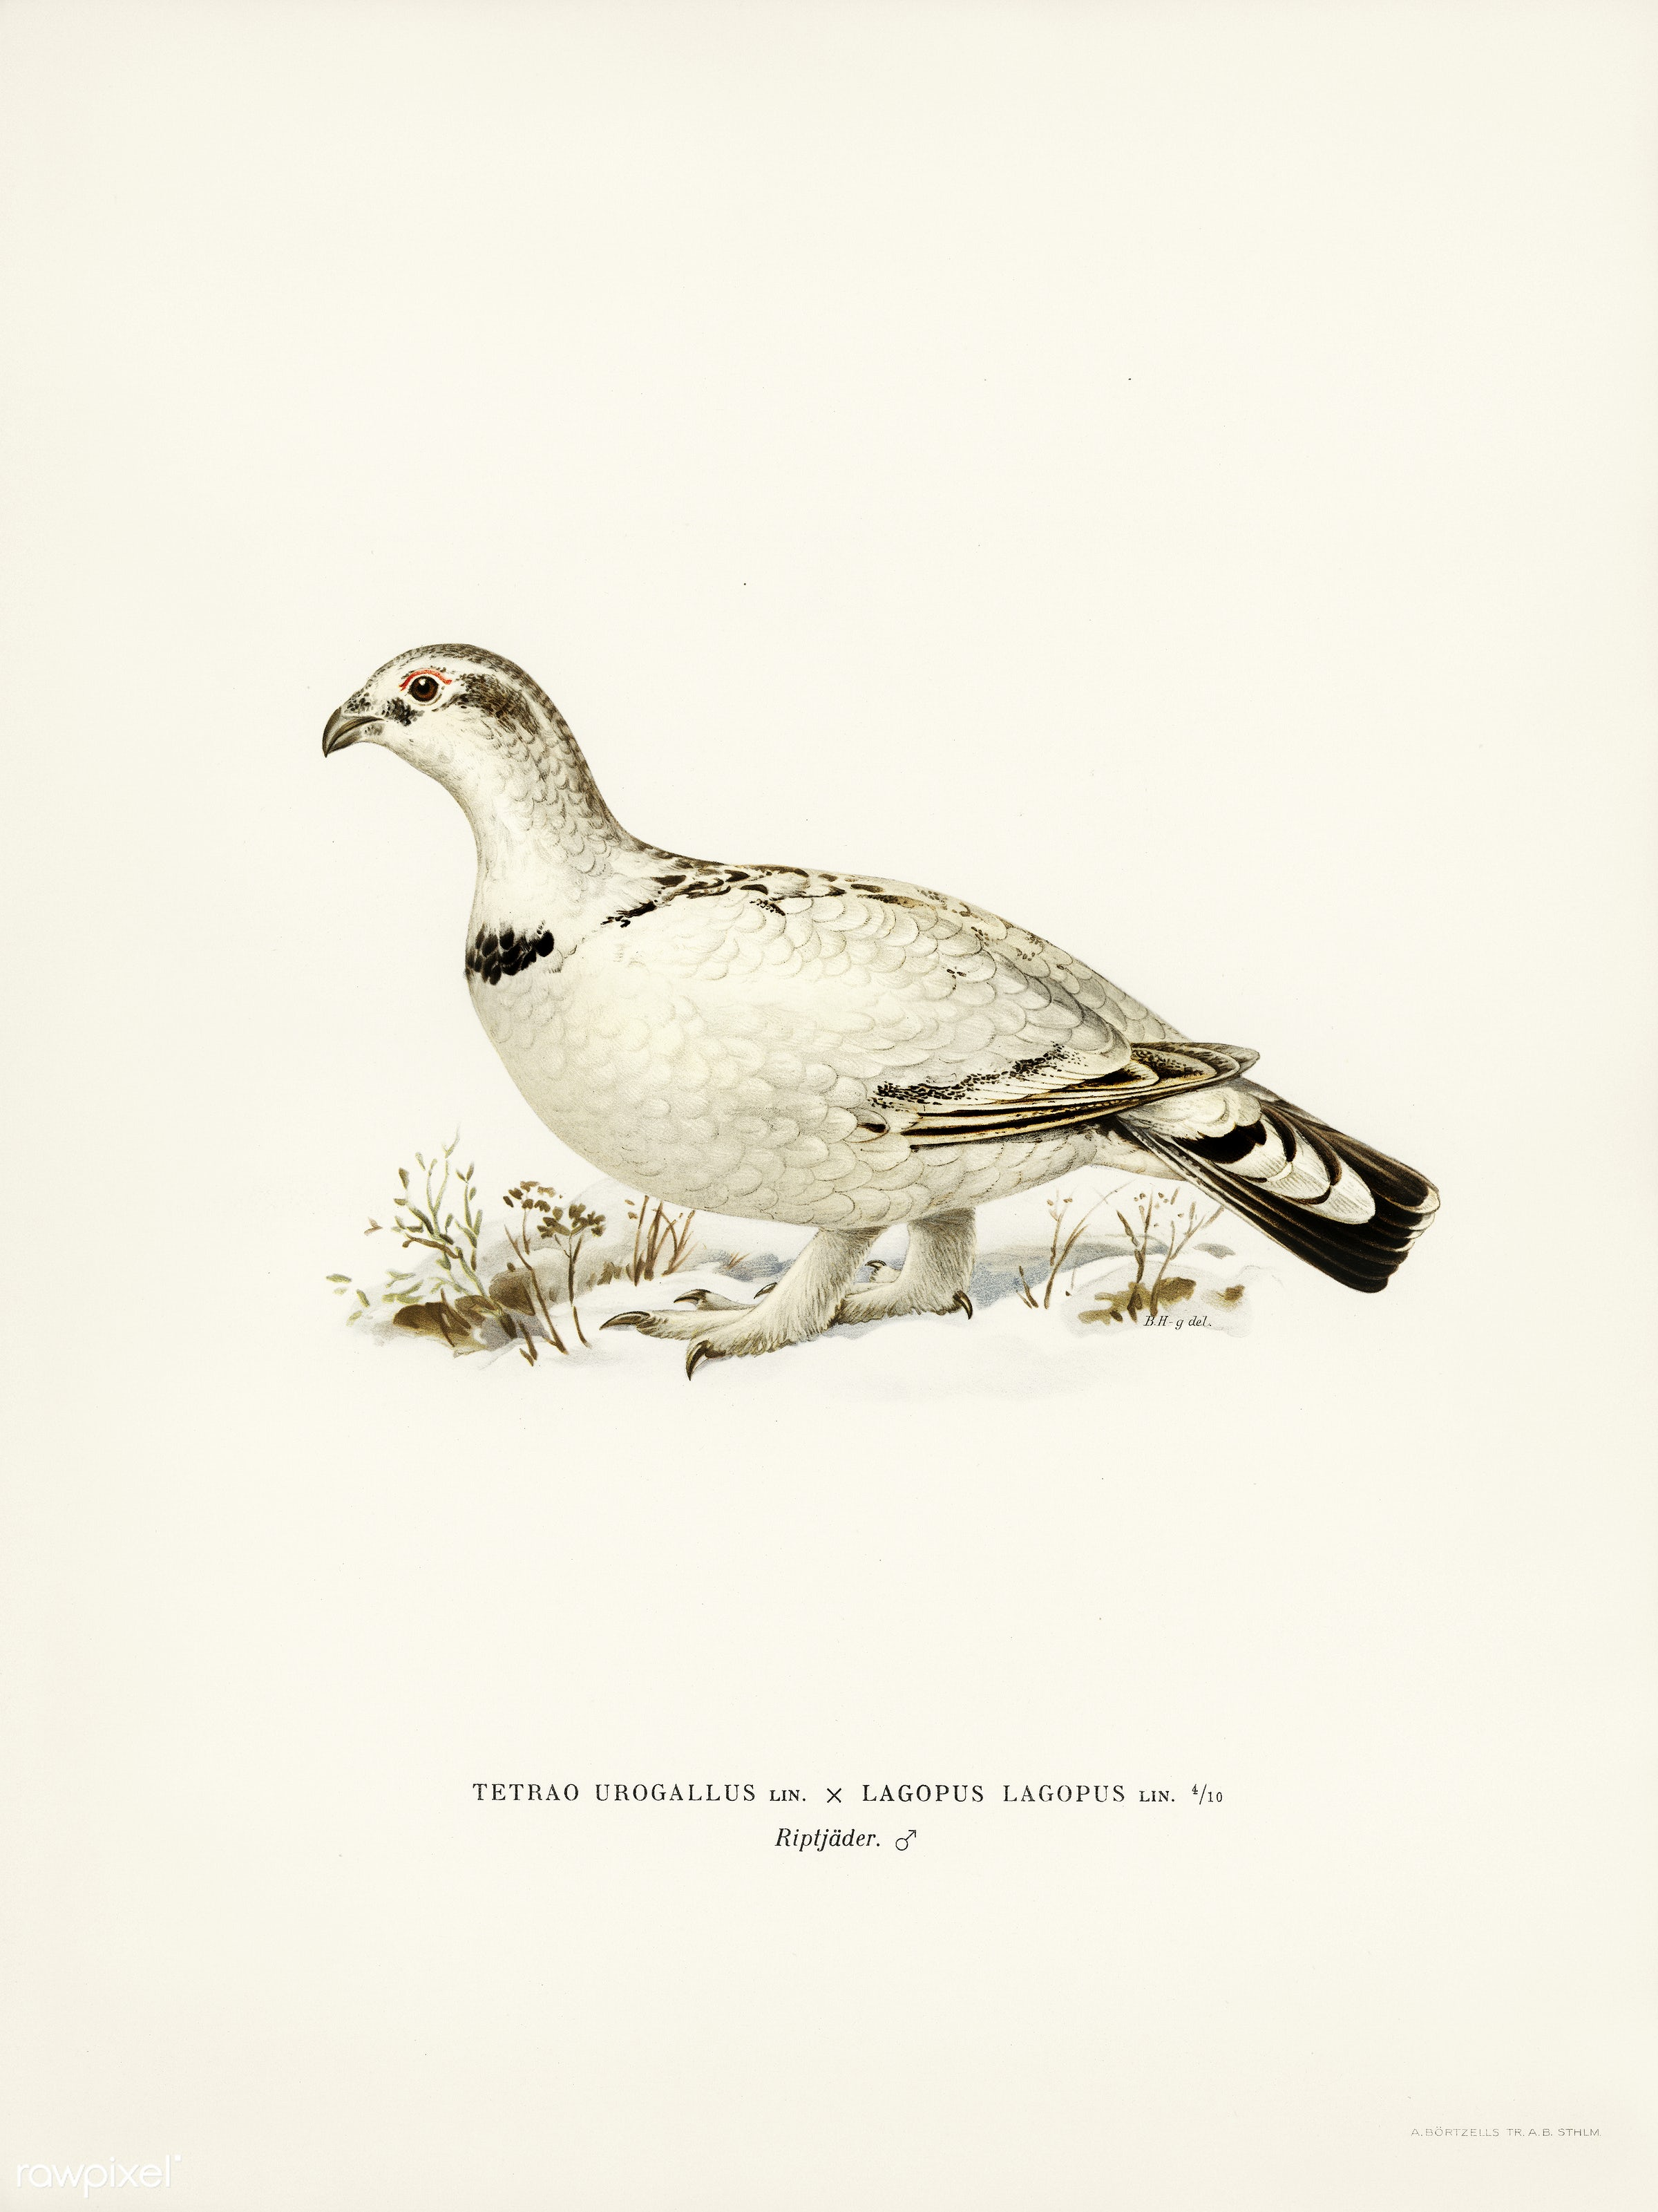 Hybrid between Western capercaillie and Willow ptarmigan (Tetrao urogallus x lagopus lagopus) illustrated by the von Wright...